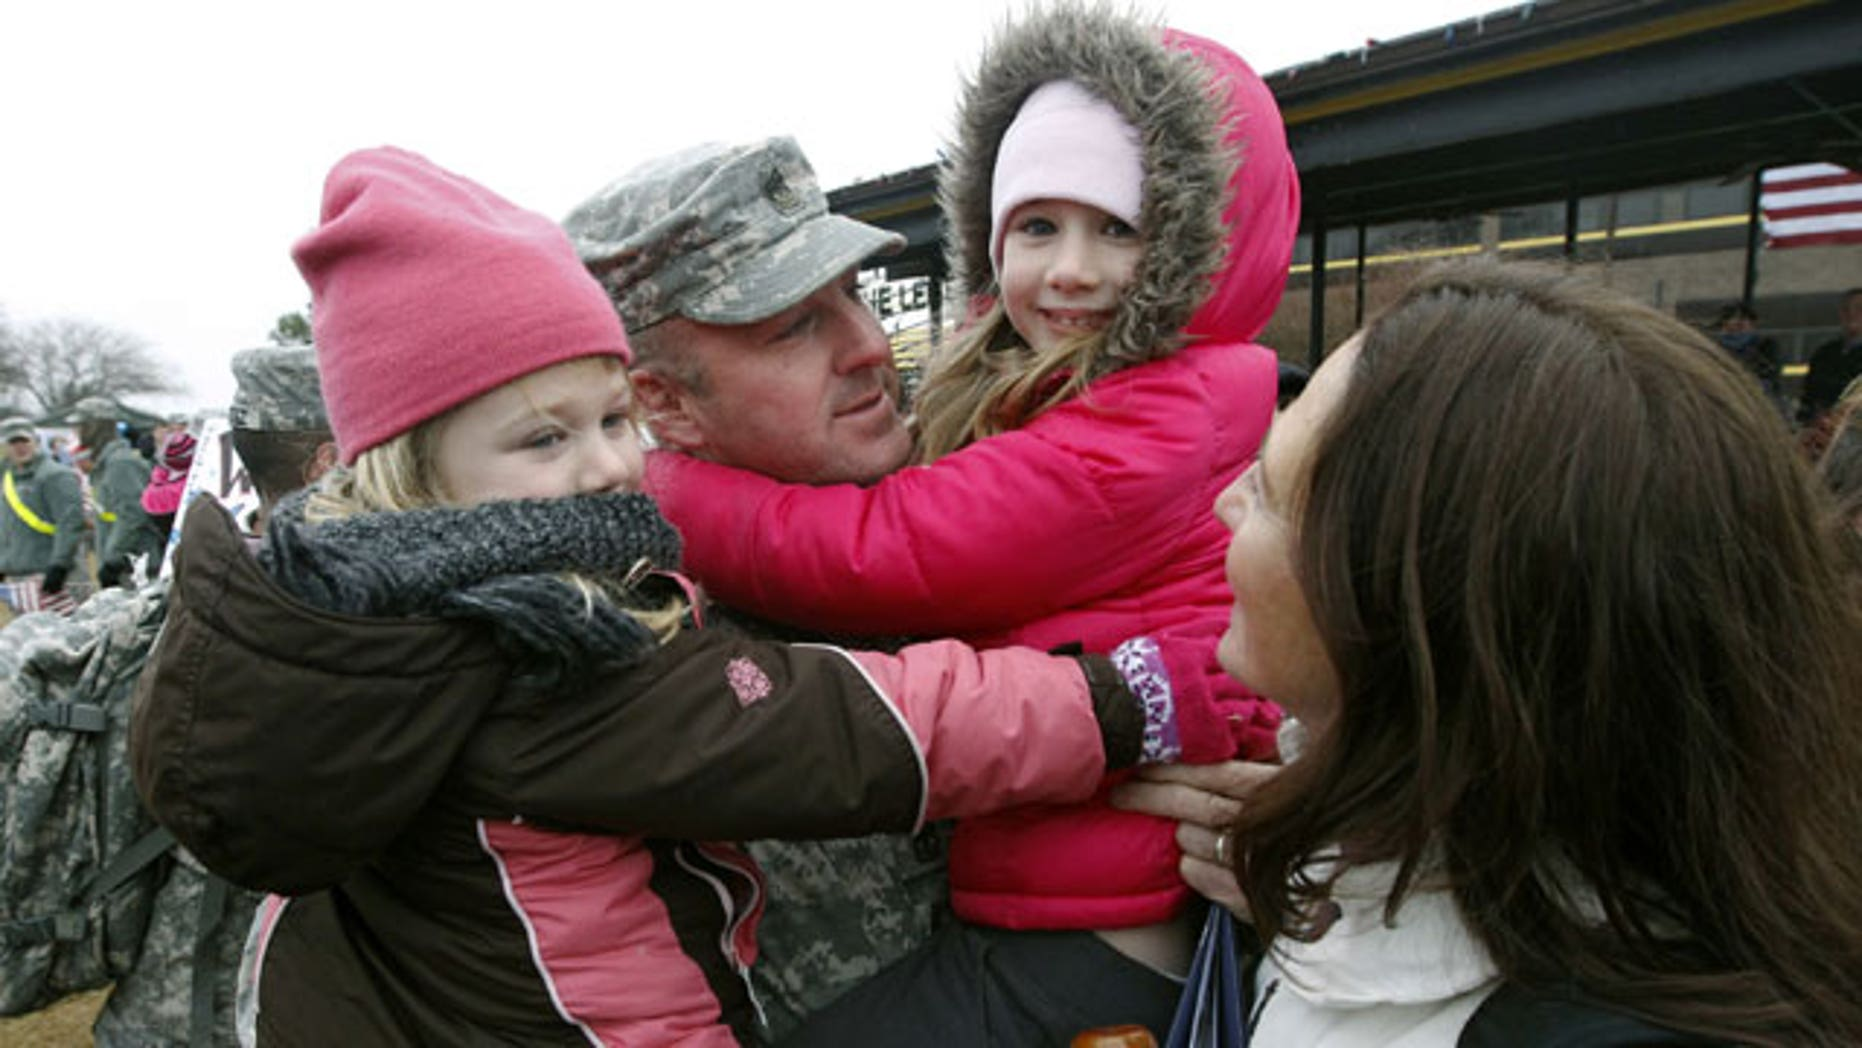 December 24, 2011: Sgt. Scott Dawson holds his daughters Mia, 5, left, and Victoria, 7, with his wife, Capt. Jessica Dawson, as U.S. Army 1st Cavalry 3rd Brigade soldiers return home from deployment in Iraq, on Christmas Eve at Fort Hood, Texas.